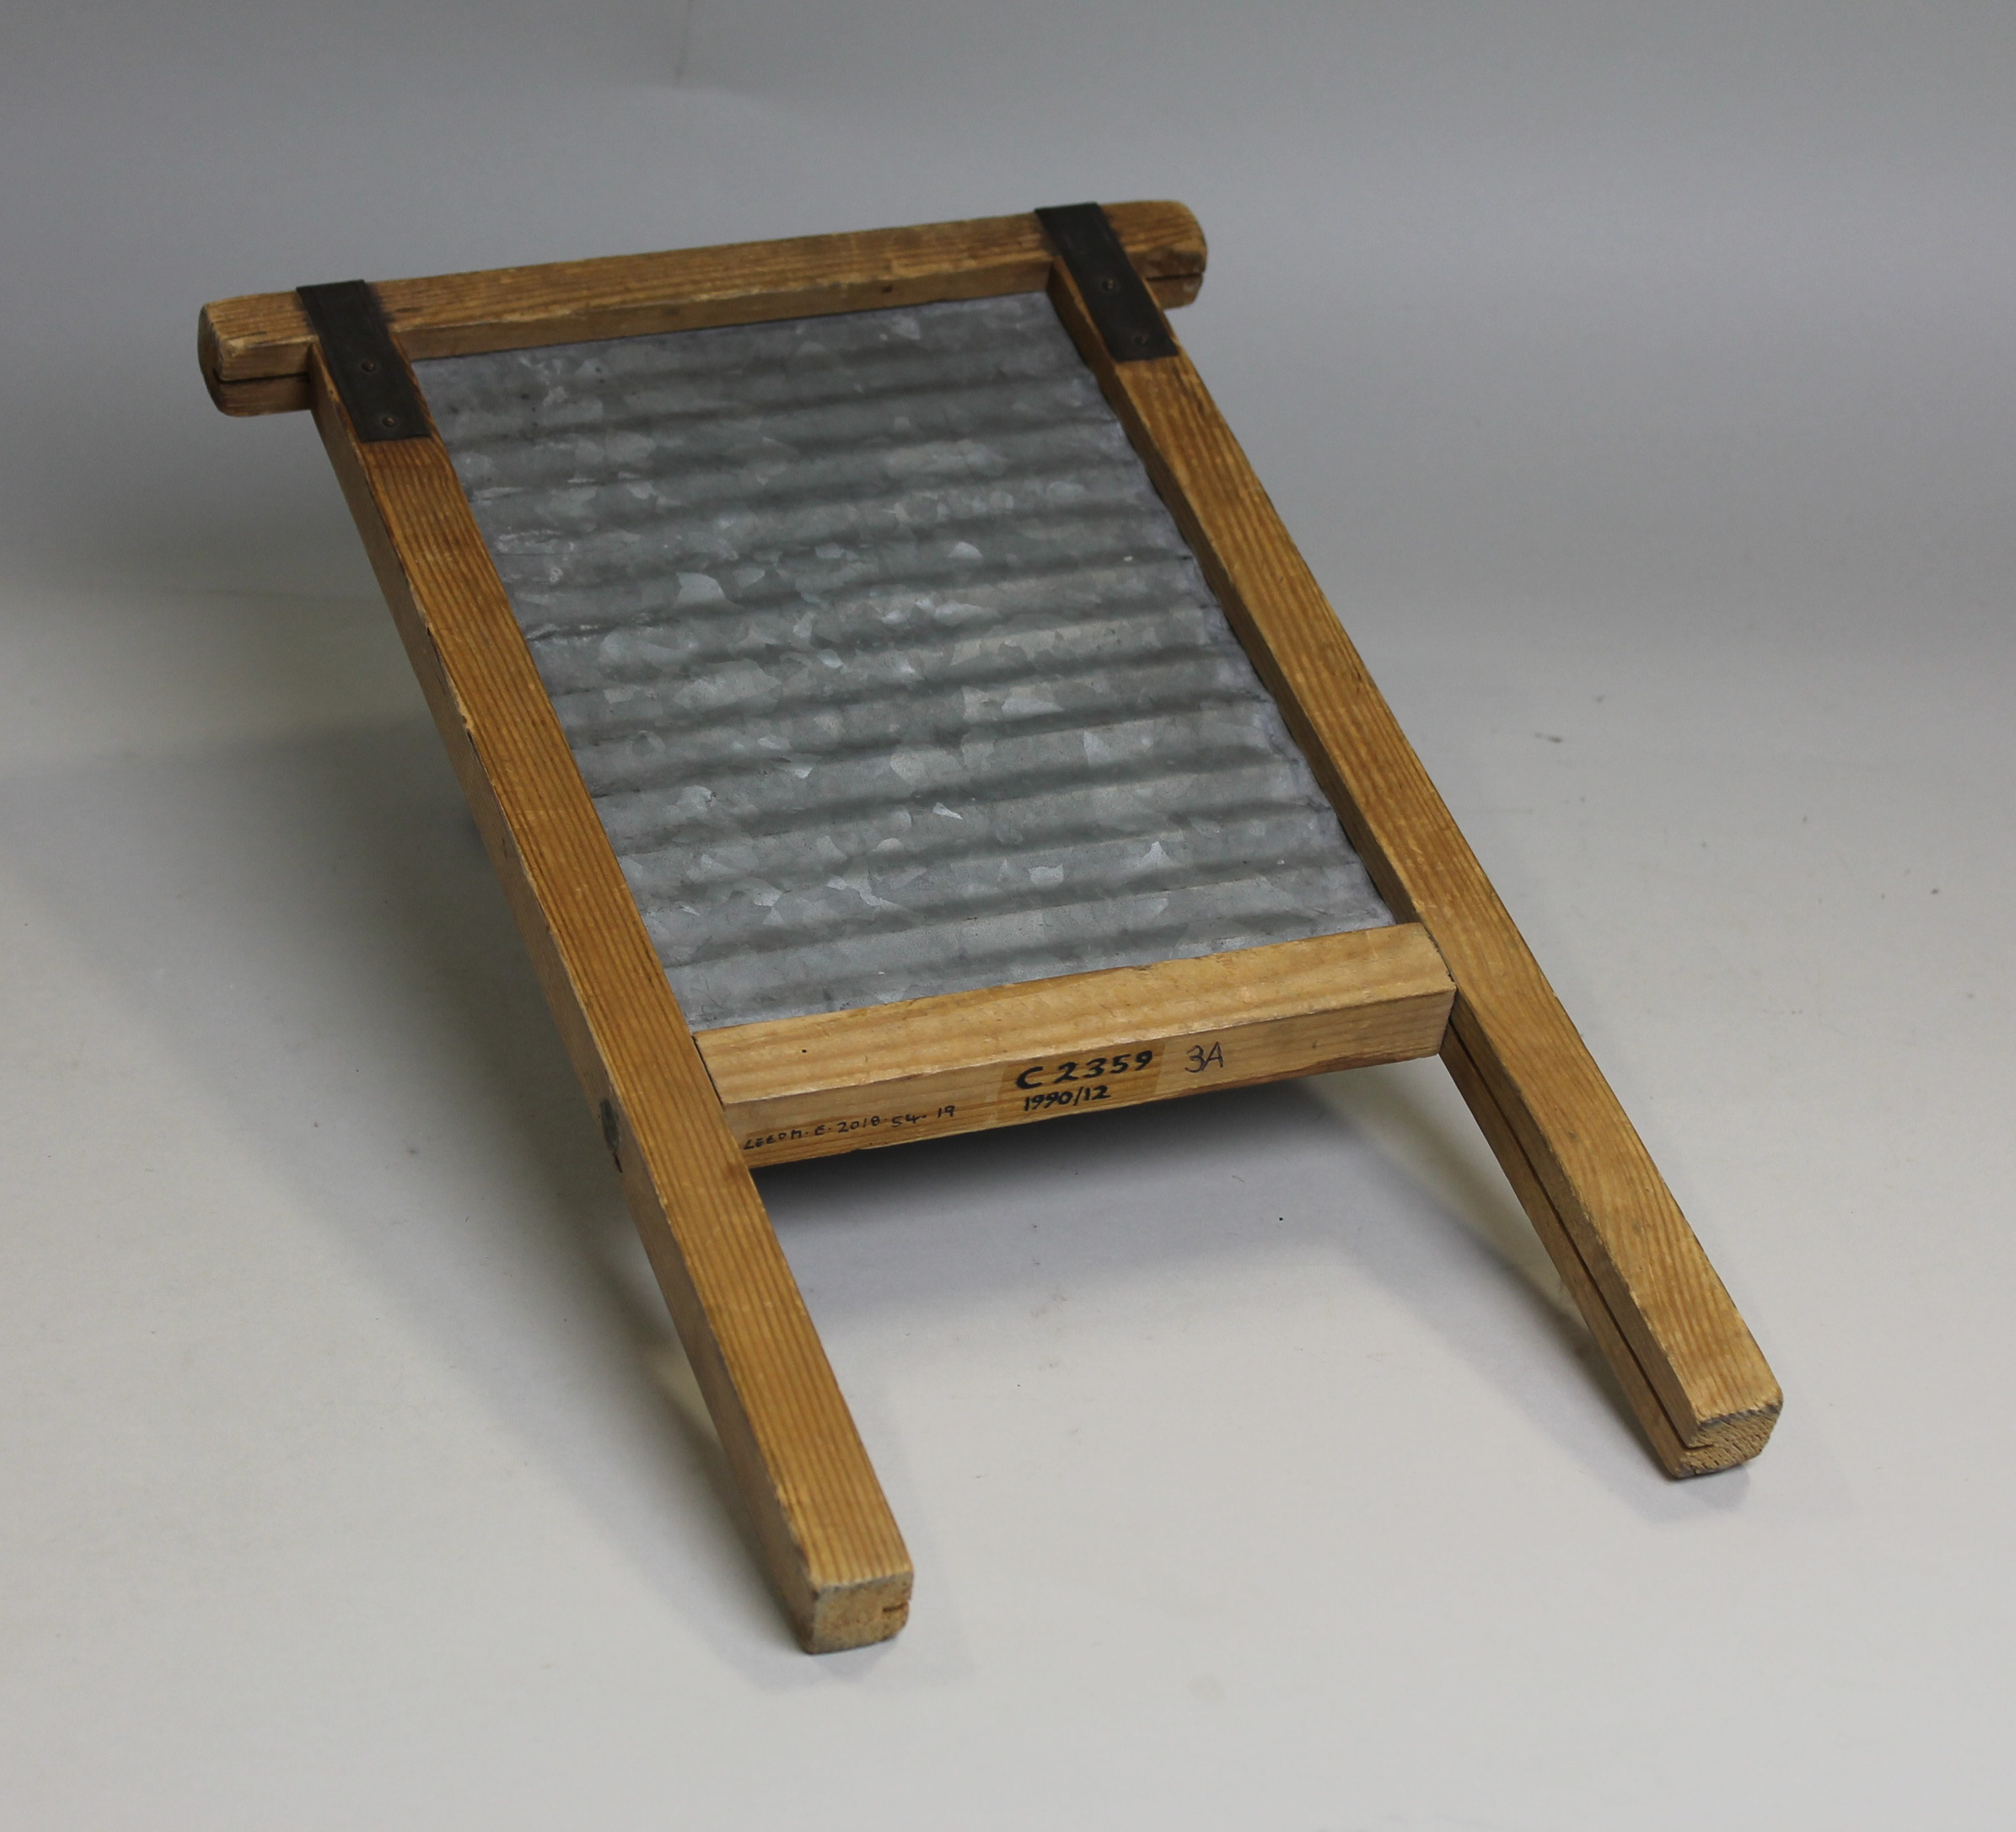 Wooden frame  holding a ribbed metal sheet